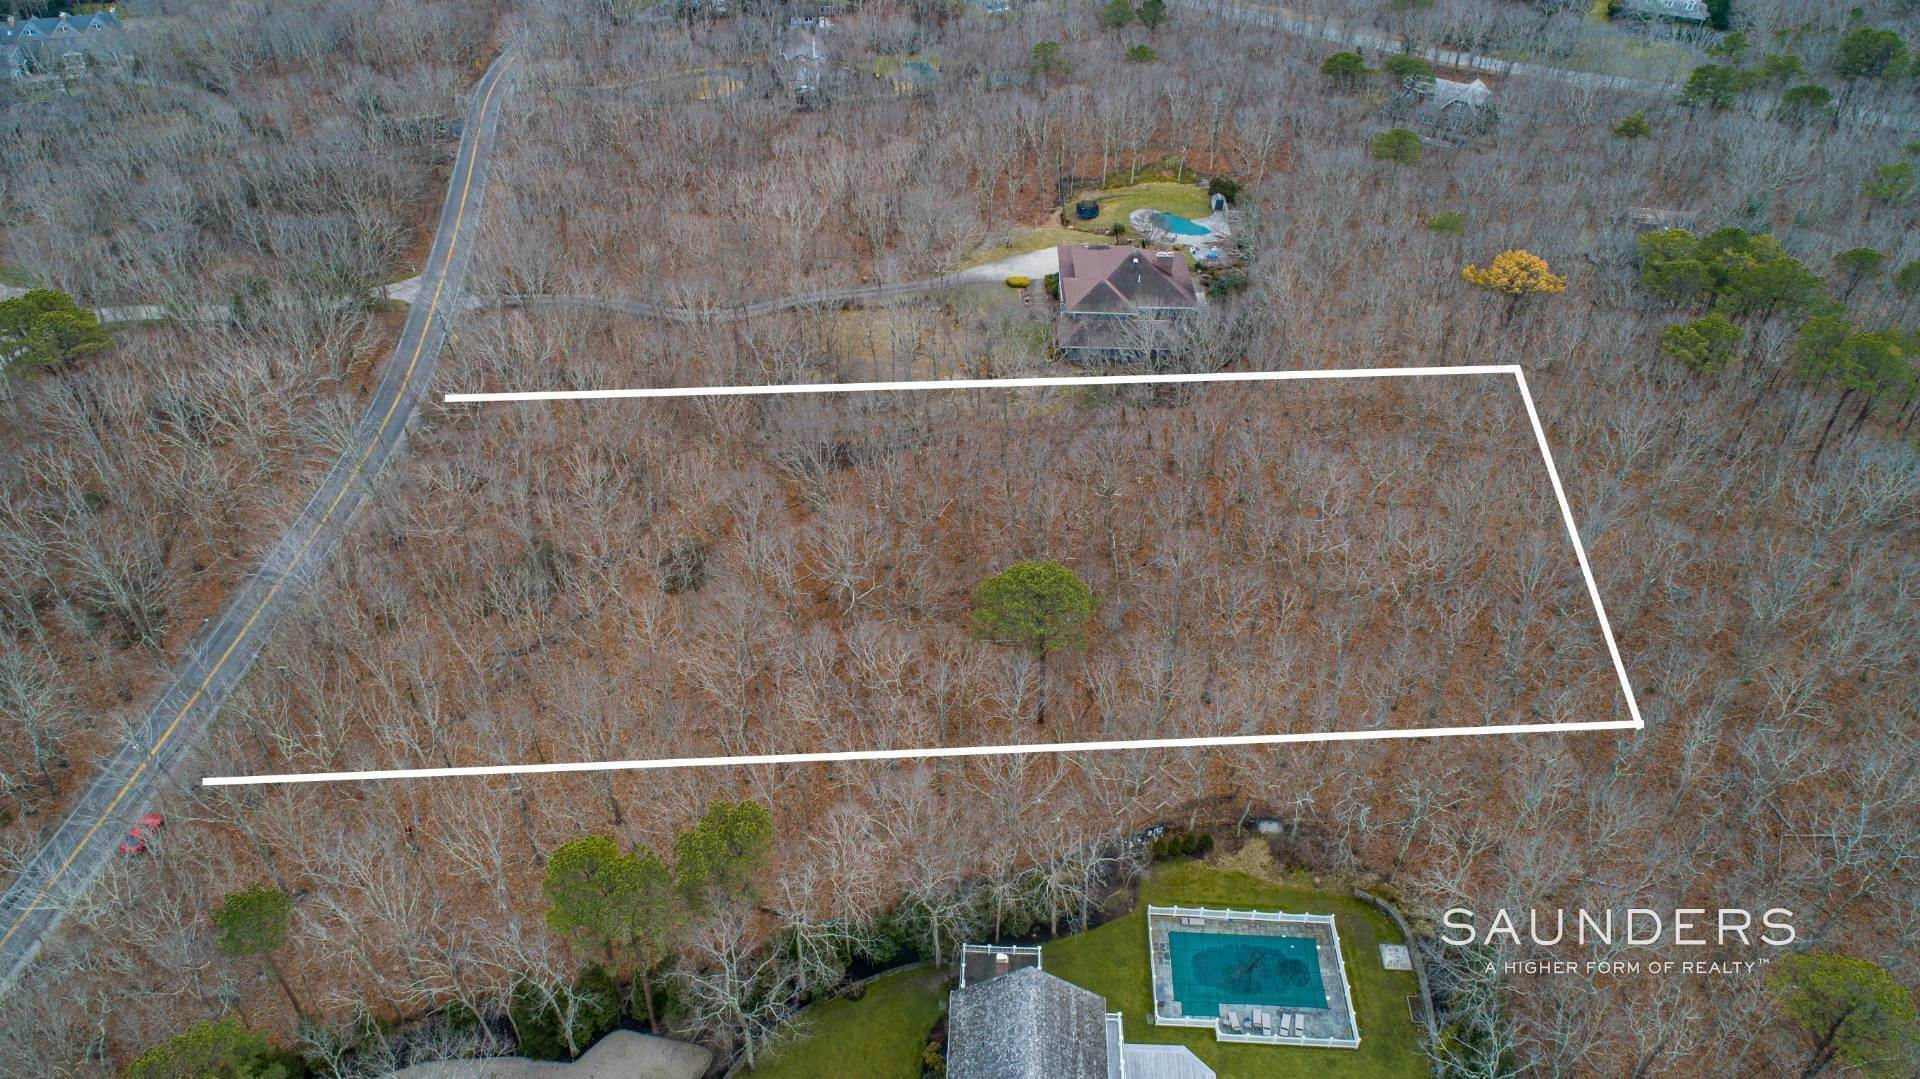 Land at Vacant 2.65 Acre Parcel In Water Mill 1552 Deerfield Road, Water Mill, Southampton Town, NY 11976